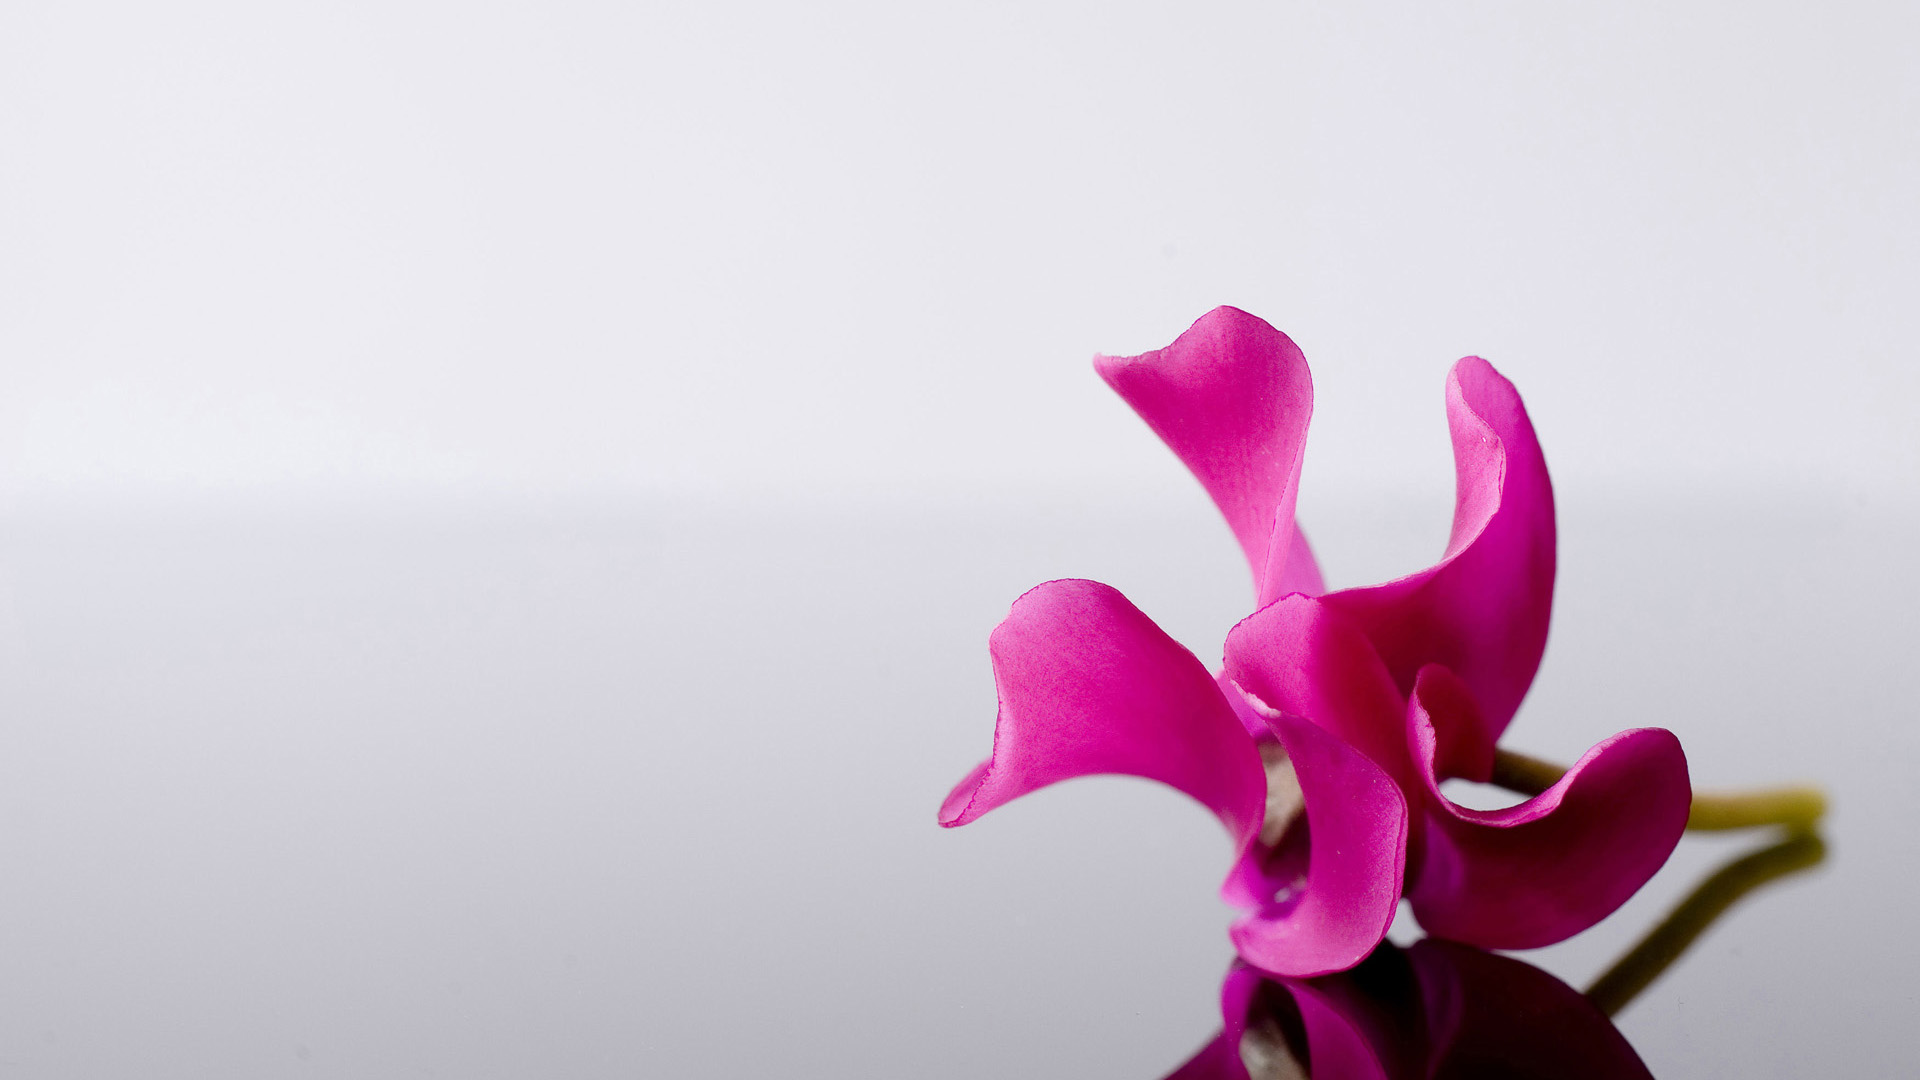 images of pink flower